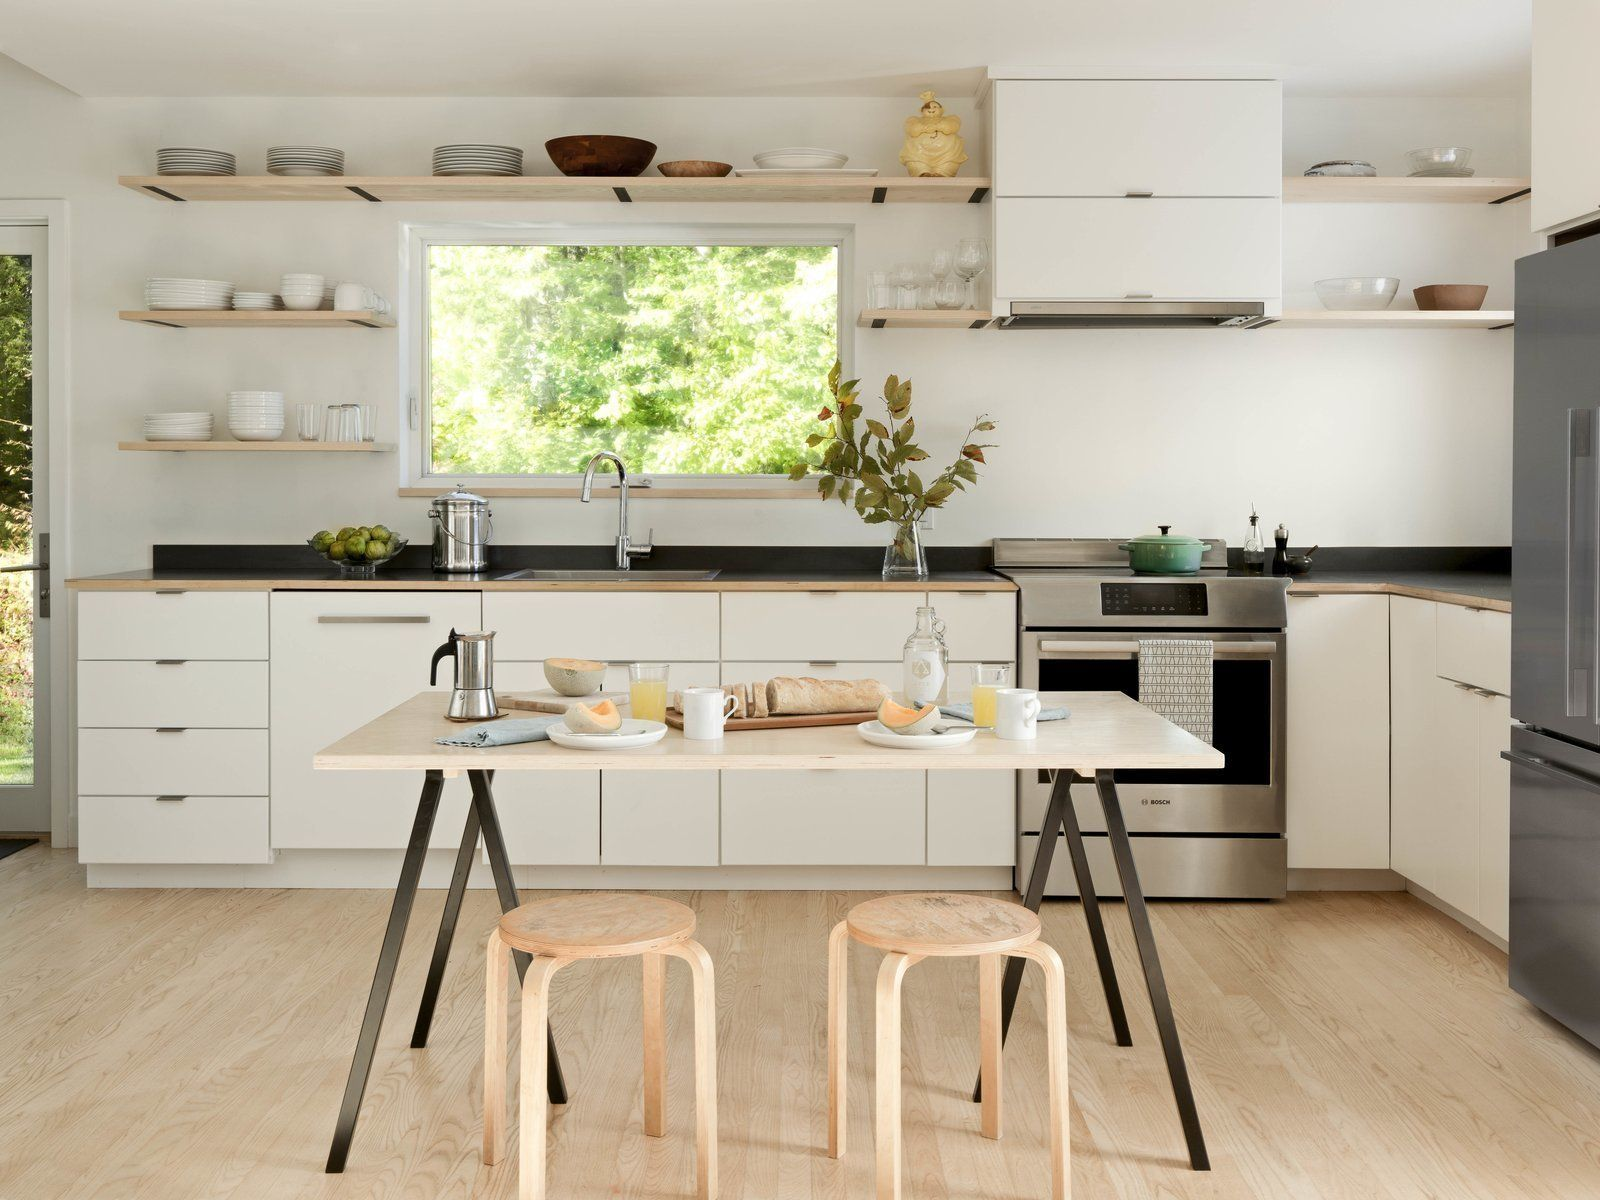 Photo 1 Of 13 In A Little Black Cabin Keeps Things Simple For A In 2020 Kitchens Without Upper Cabinets Black House Upper Cabinets